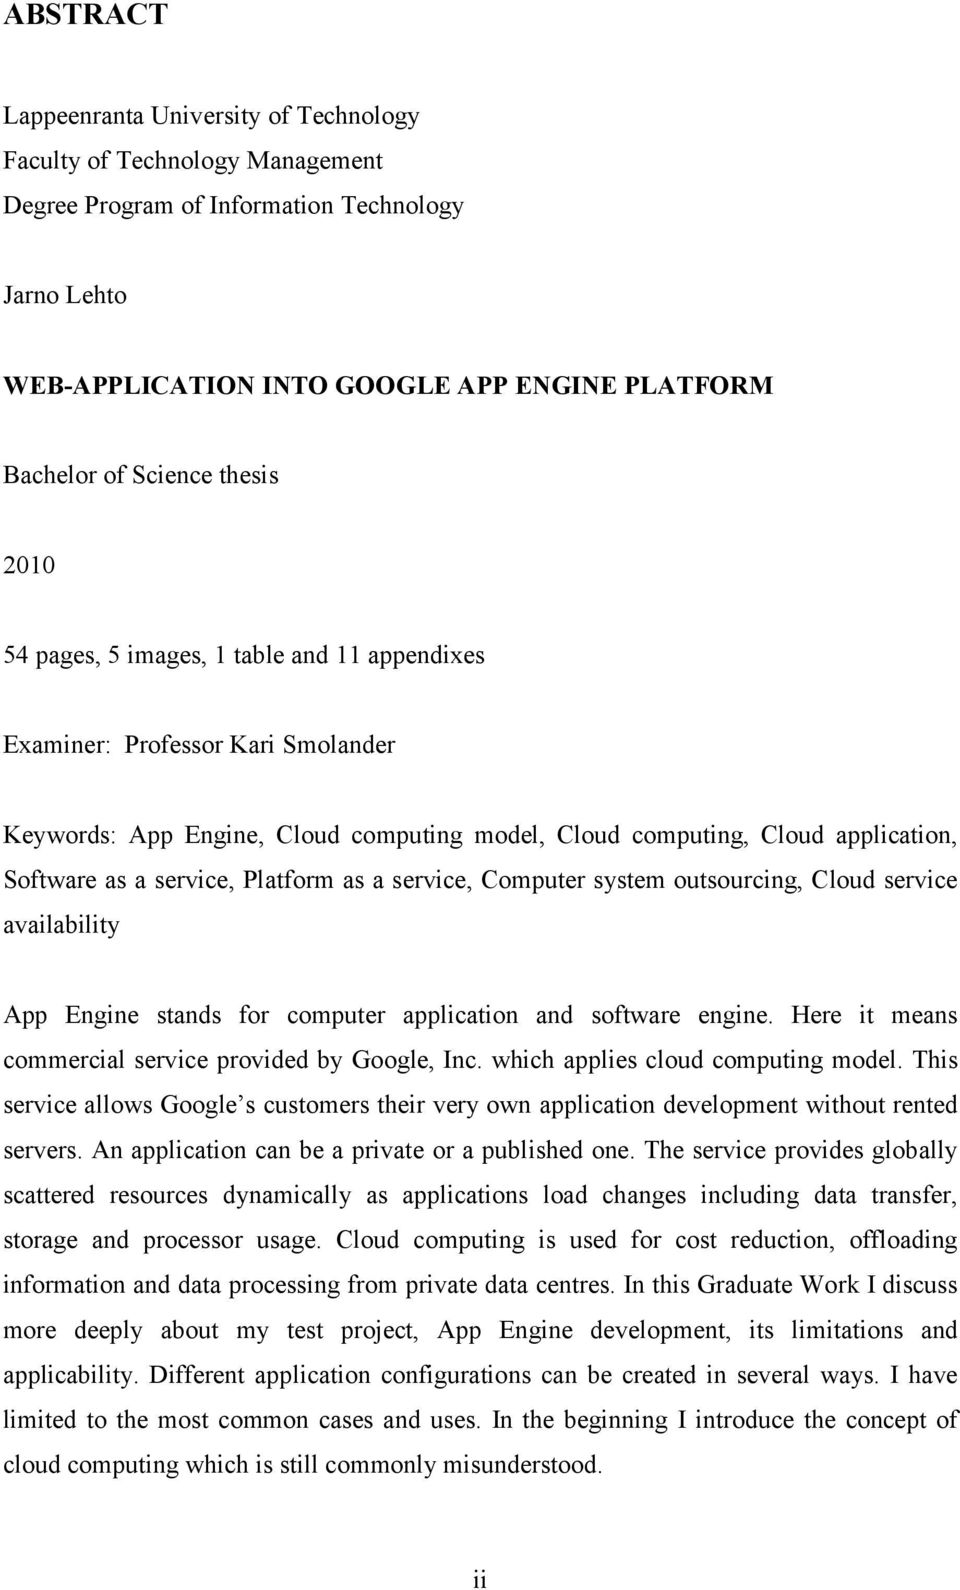 service, Platform as a service, Computer system outsourcing, Cloud service availability App Engine stands for computer application and software engine.